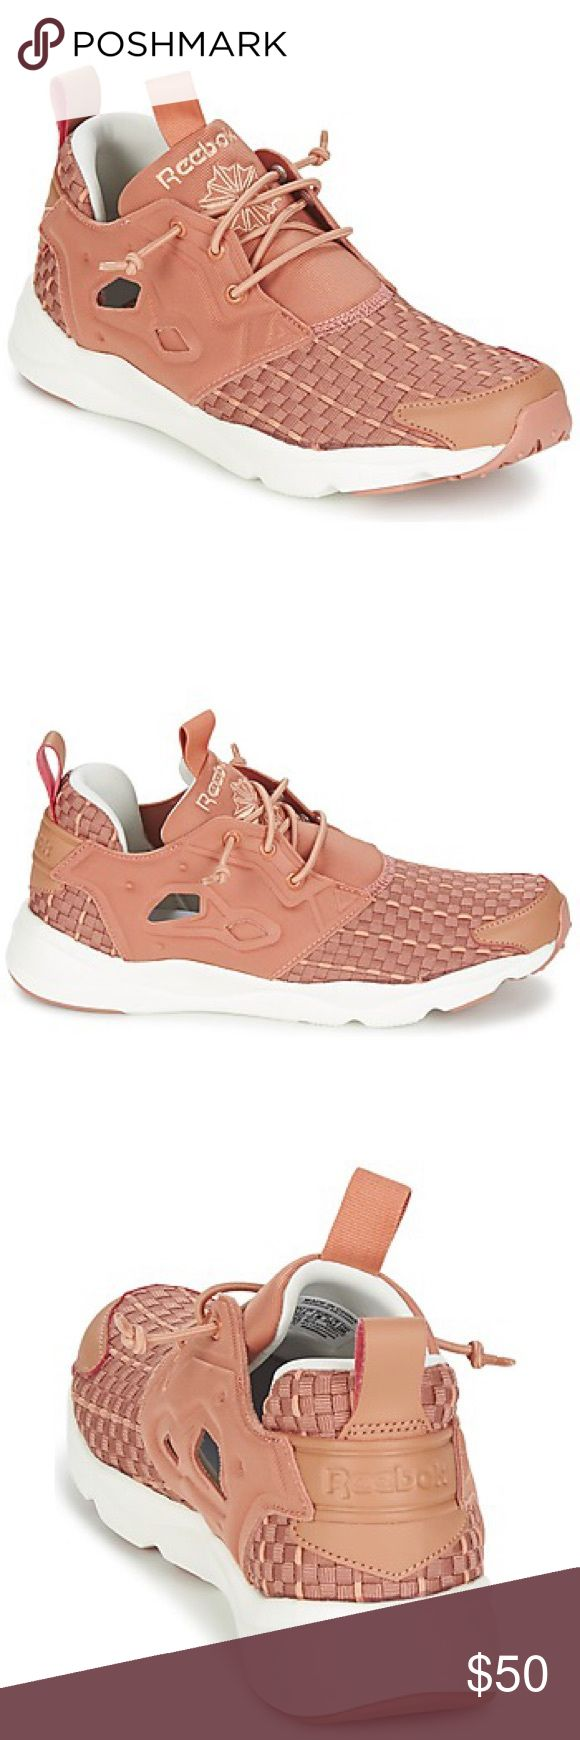 Reebok Furylite New Woven Sneakers Adorable pink sneakers from Reebok! Woven pattern and cut outs along the shoe give it a unique look. Extremely comfortable and easy to wear. Only worn twice! Reebok Shoes Sneakers